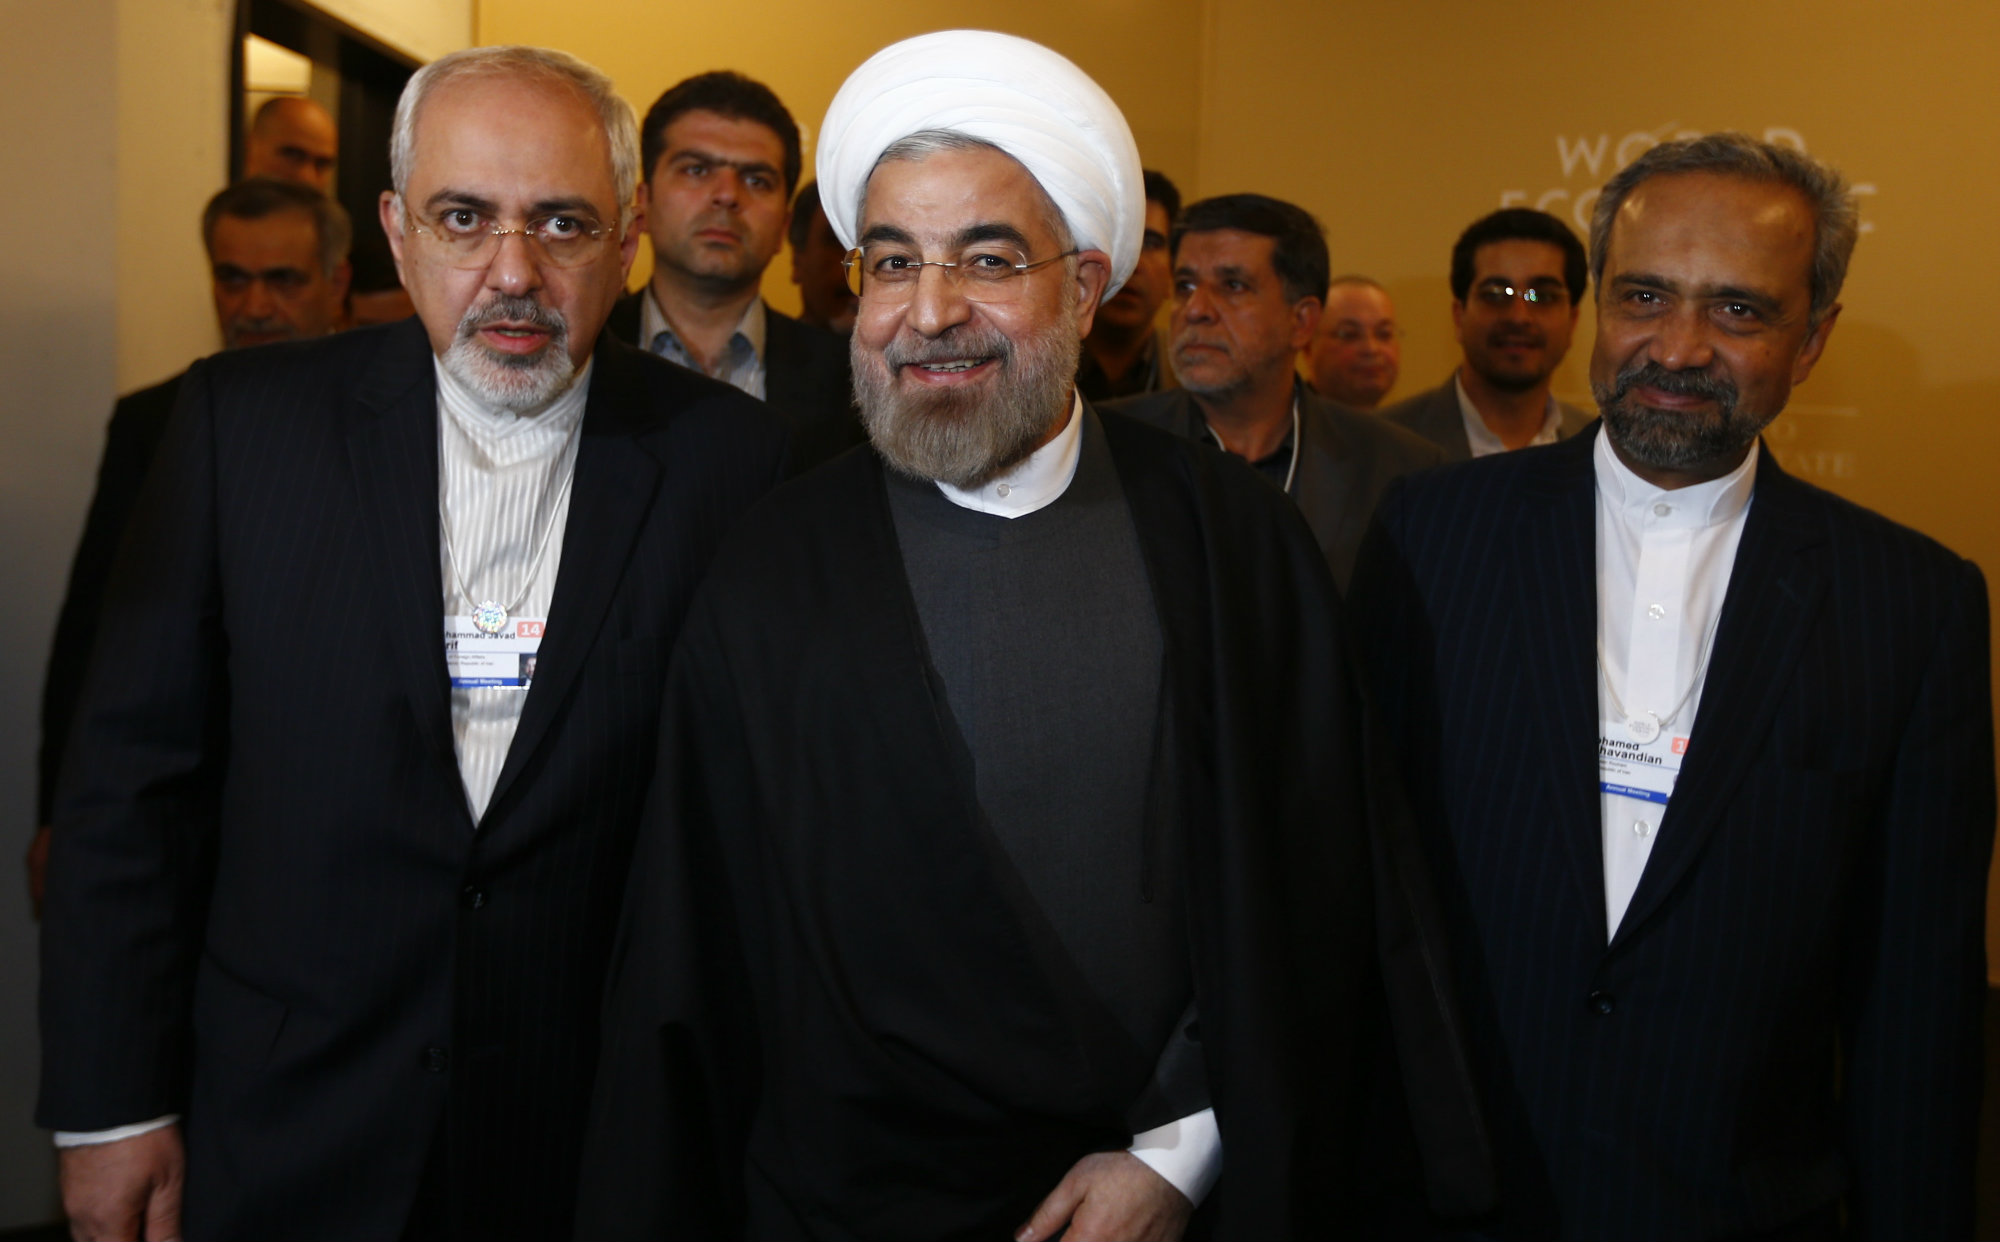 Iran's President Hassan Rouhani, Foreign Minister Mohammad Javad Zarif (L) and Mohammad Nahavandian the Head of Iran Presidential Office (R) arrive for a meeting during the annual meeting of the World Economic Forum (WEF) in Davos January 22, 2014. REUTERS/Denis Balibouse